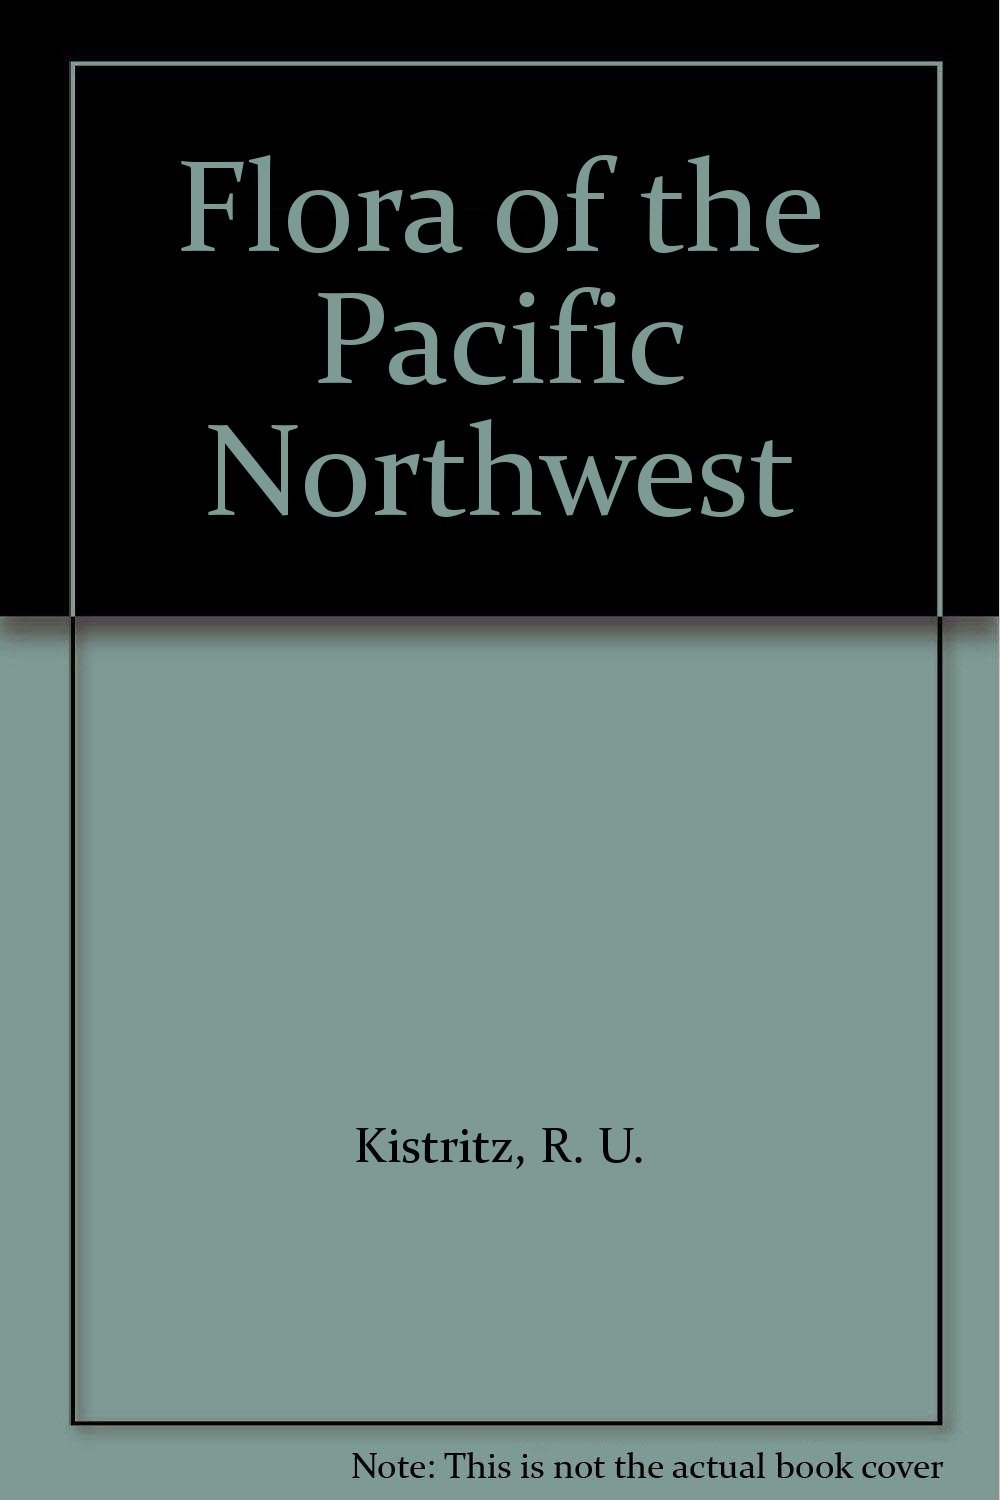 Flora of the Pacific Northwest: R. U. Kistritz: 9780295976525: Amazon.com:  Books